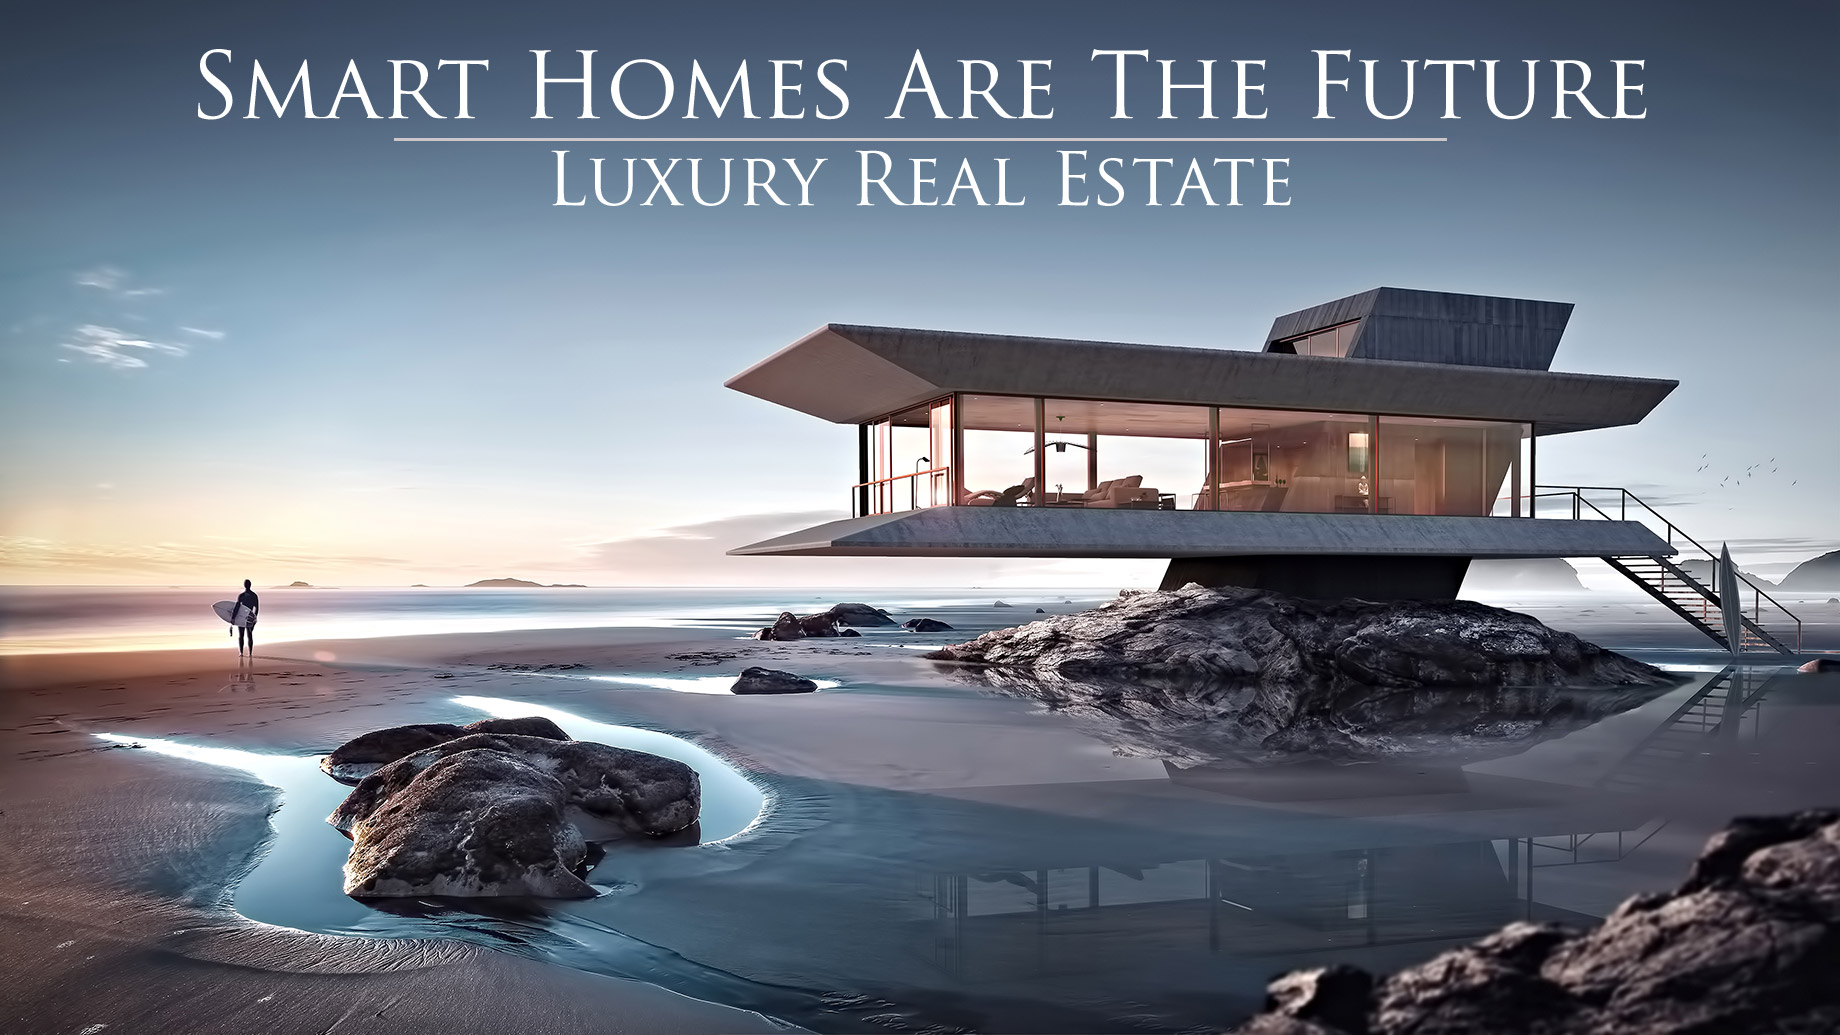 Smart Homes Are The Future of Luxury Real Estate